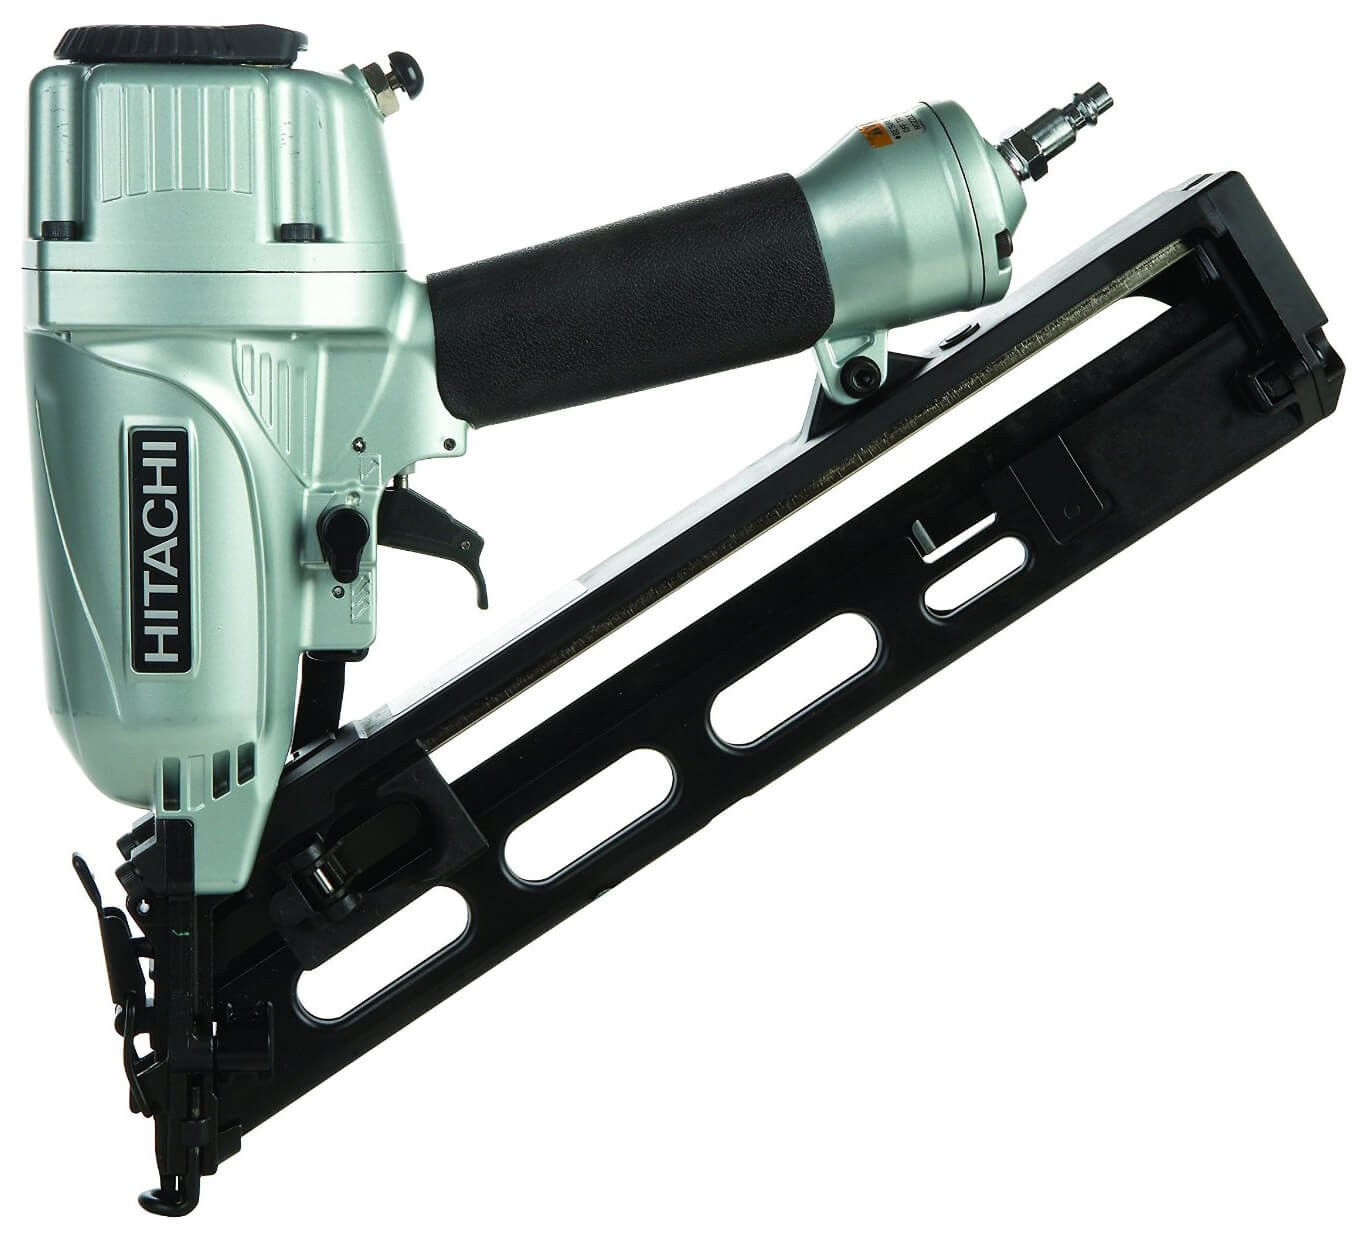 Hitachi NT65MA4 15-Gauge Angled Finish Nailer with Air Duster